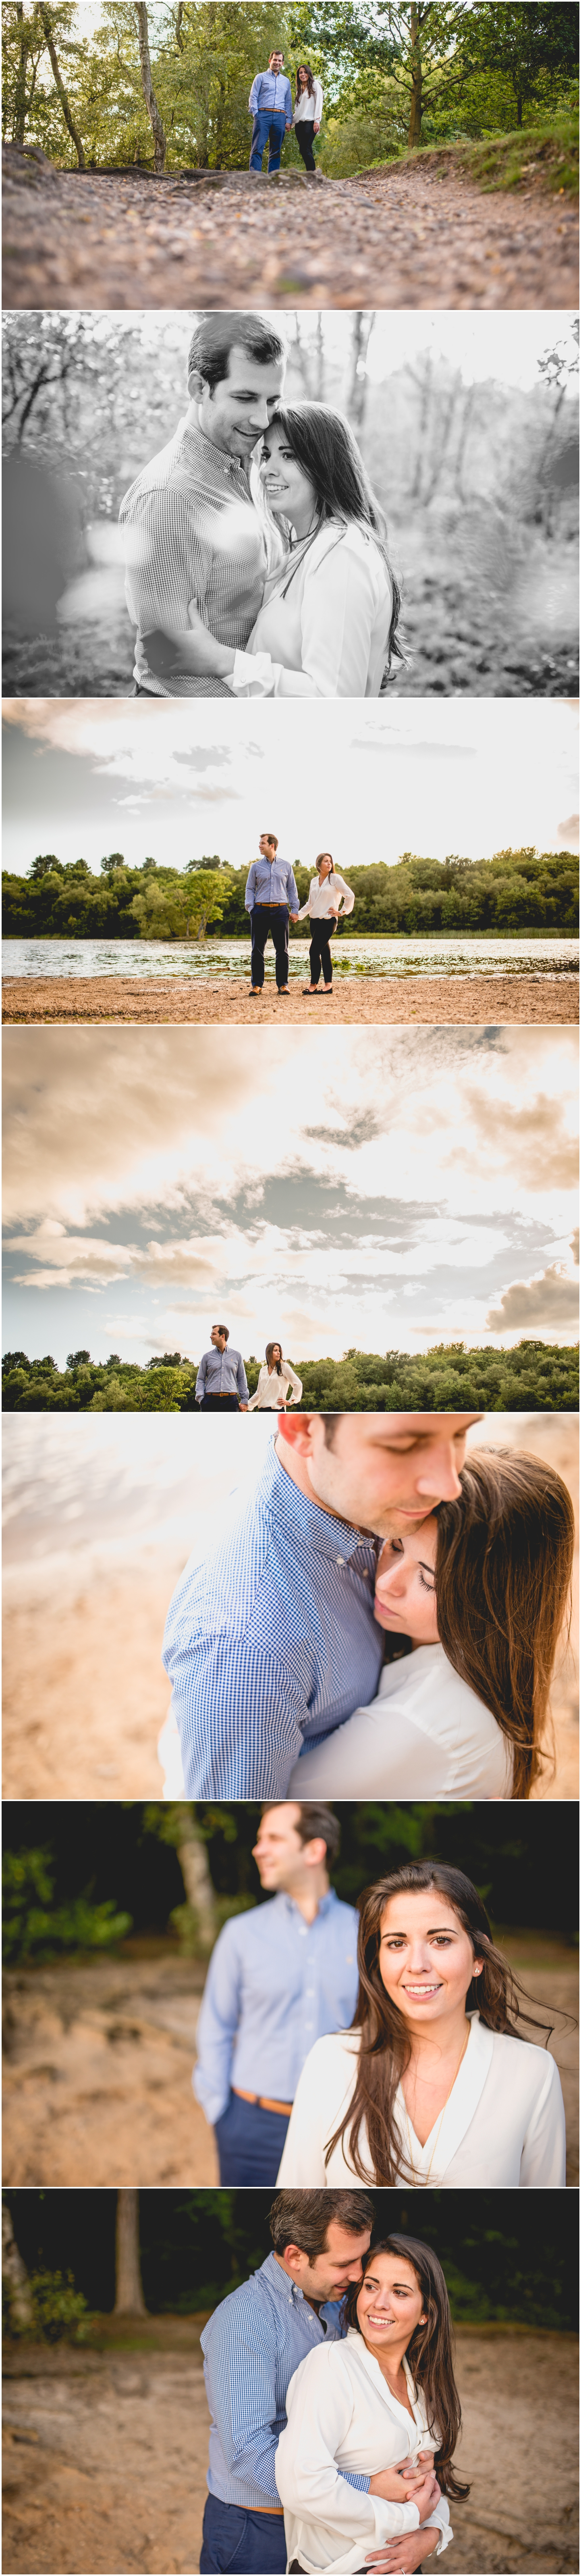 Engagement Shoot at The Boathouse Restaurant in Sutton Park, Sutton Coldfield with photos by Lisa Carpenter Photography, West Midlands and Birmingham based wedding photographer